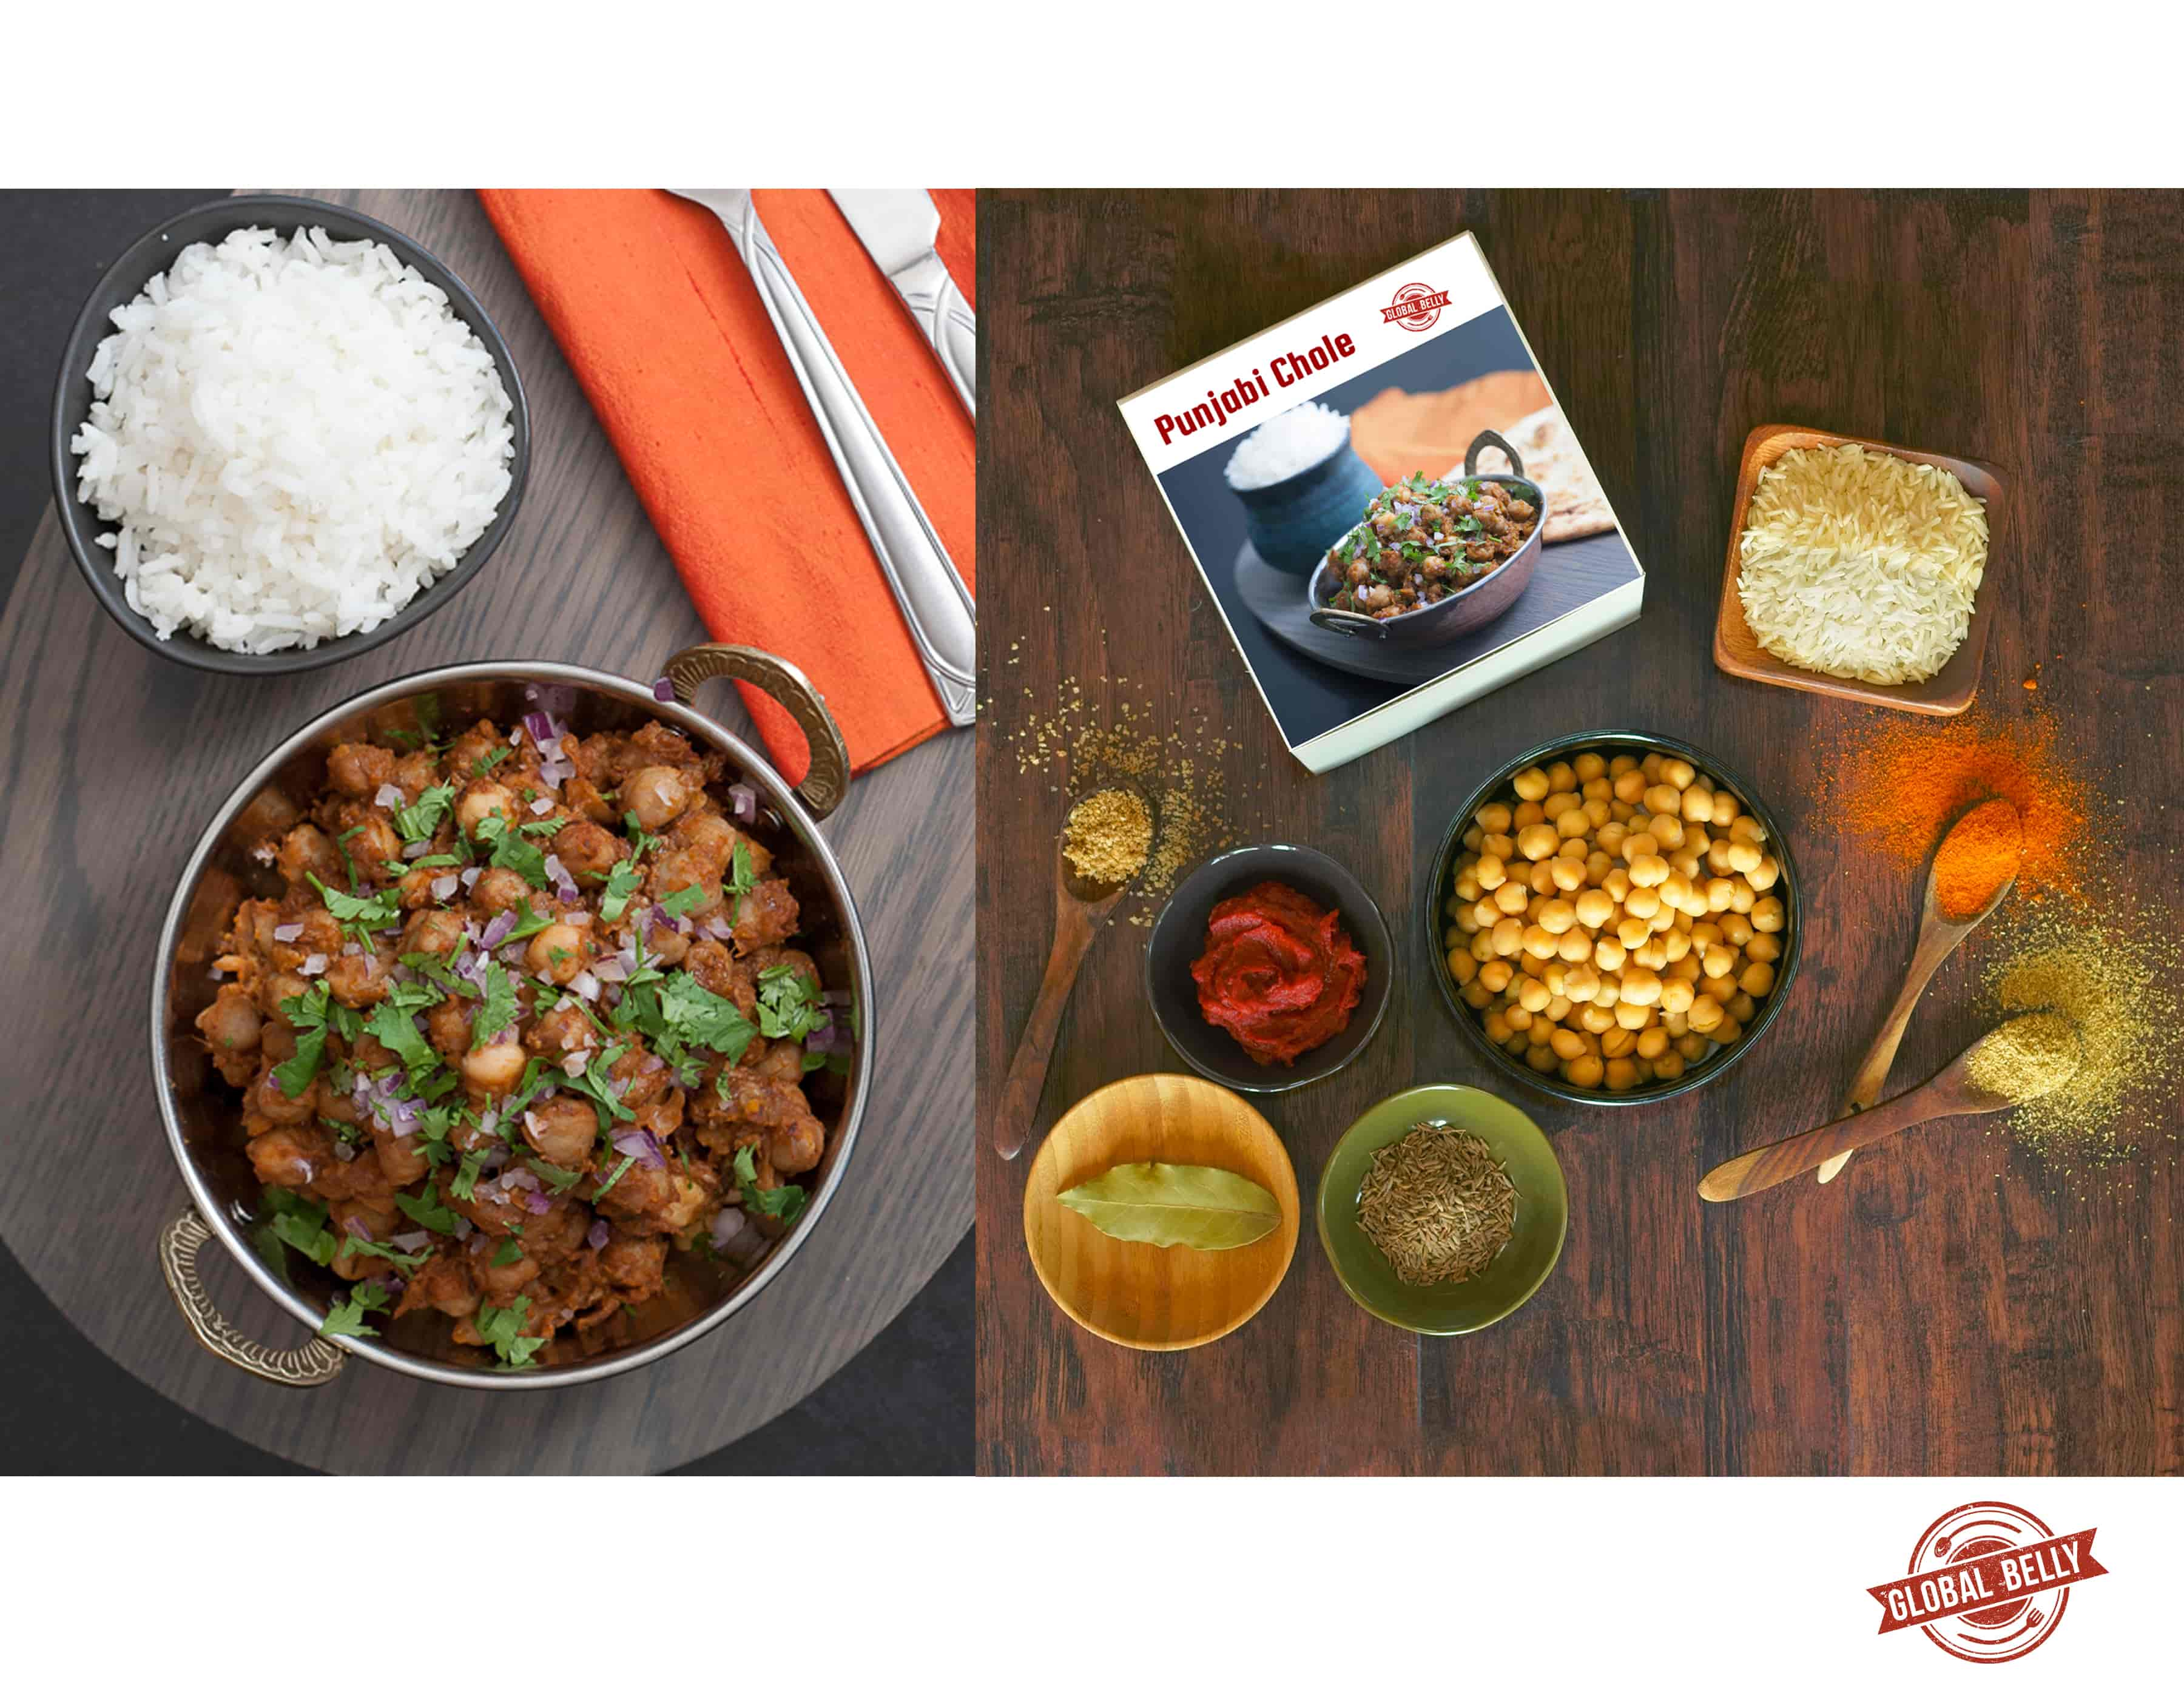 20. Global Belly Recipe Boxes - Global Belly provides shelf-stable and affordable recipe boxes that help consumers cook international cuisines at home. With flavorful dishes to choose from such as tikka masala and pad see ew, these recipe boxes make the perfect gift for the world traveler or international foodie in your life.